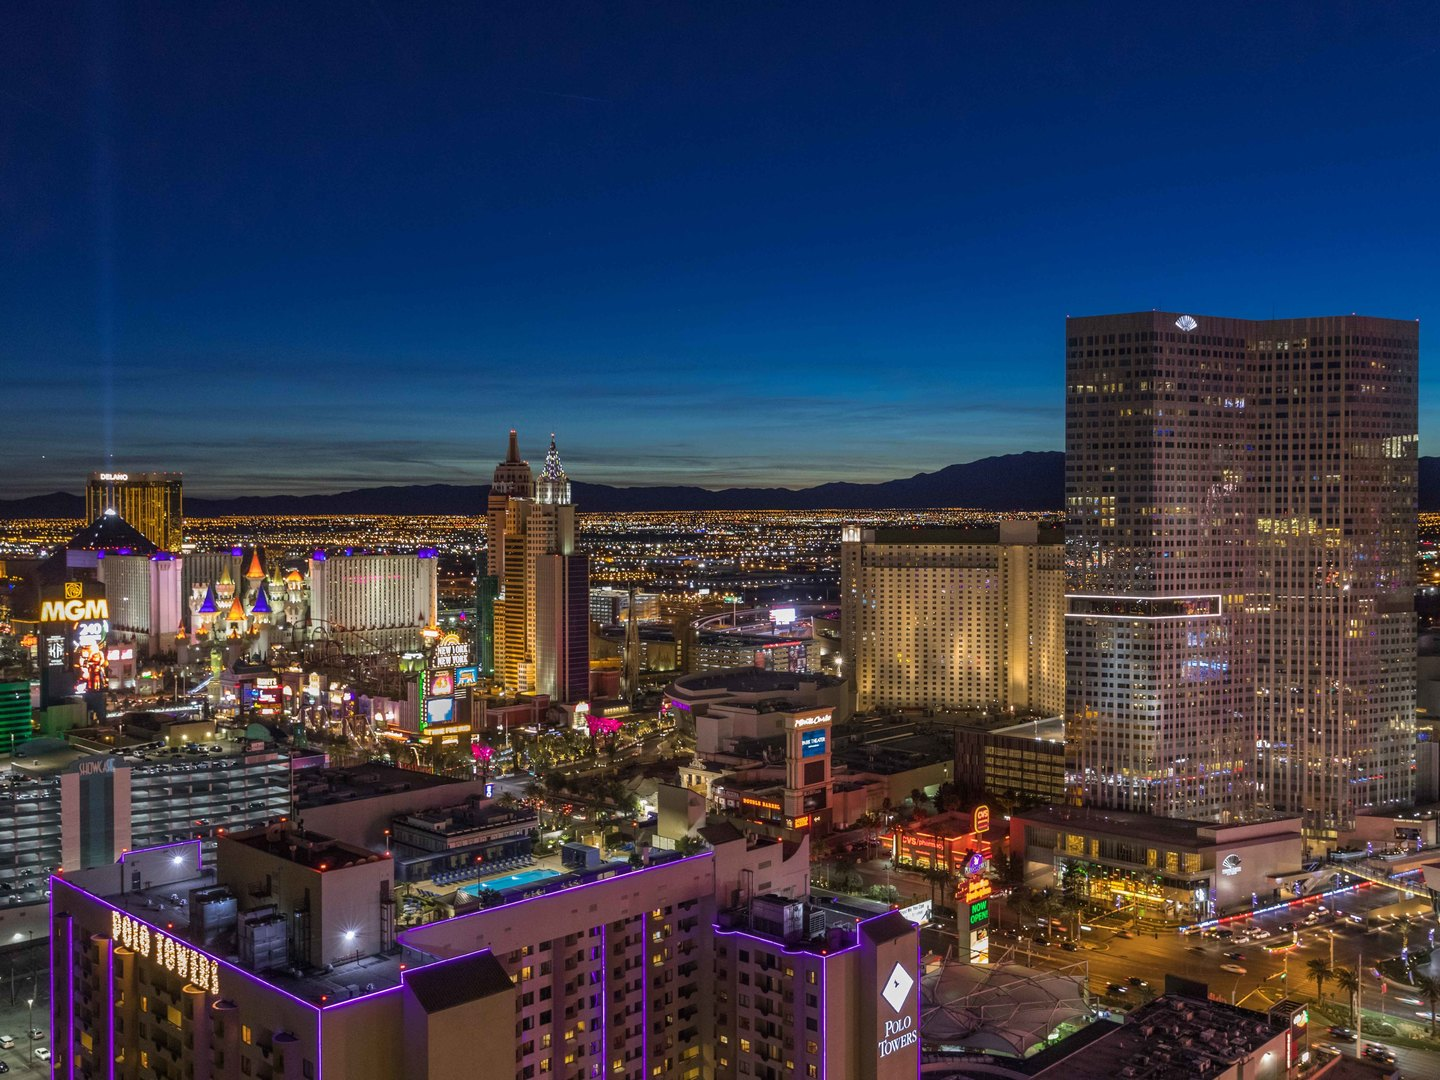 Marriott's Grand Chateau<span class='trademark'>®</span> Roof Top View of the Vegas strip. Marriott's Grand Chateau<span class='trademark'>®</span> is located in Las Vegas, Nevada United States.